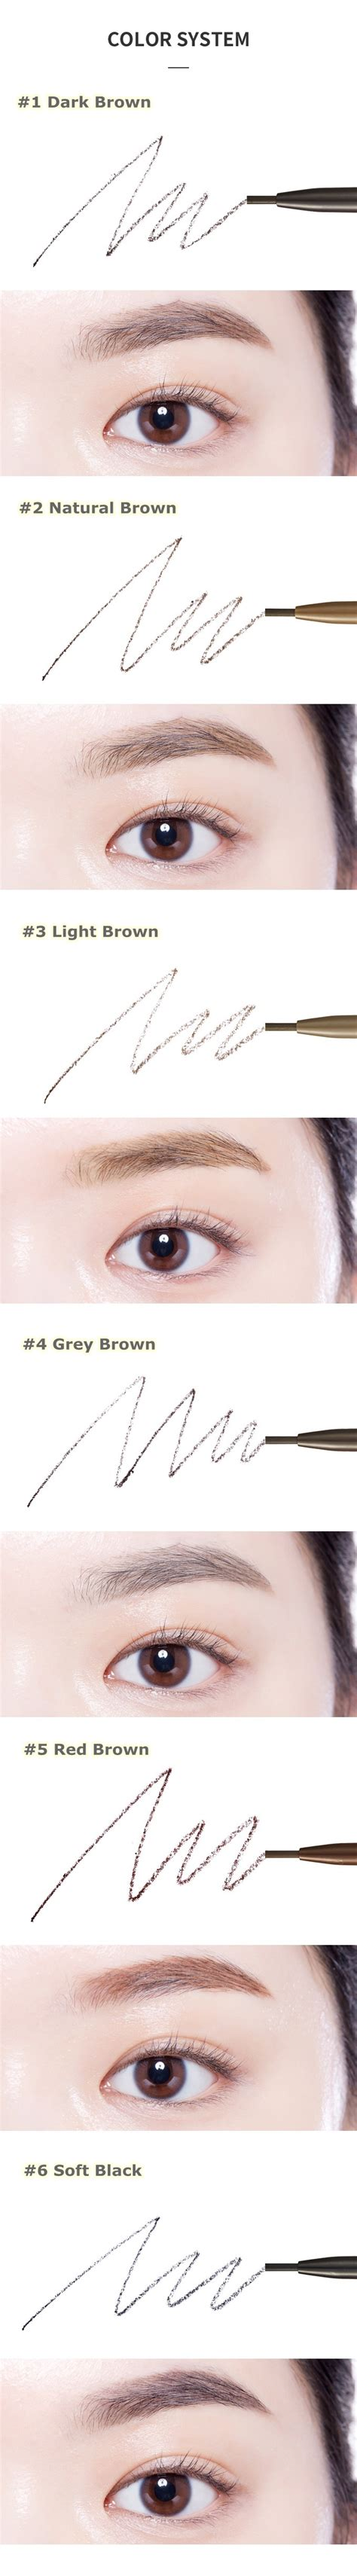 Harga Etude House Eyebrow Pencil etude house drawing eye brow 1dark brown daftar harga